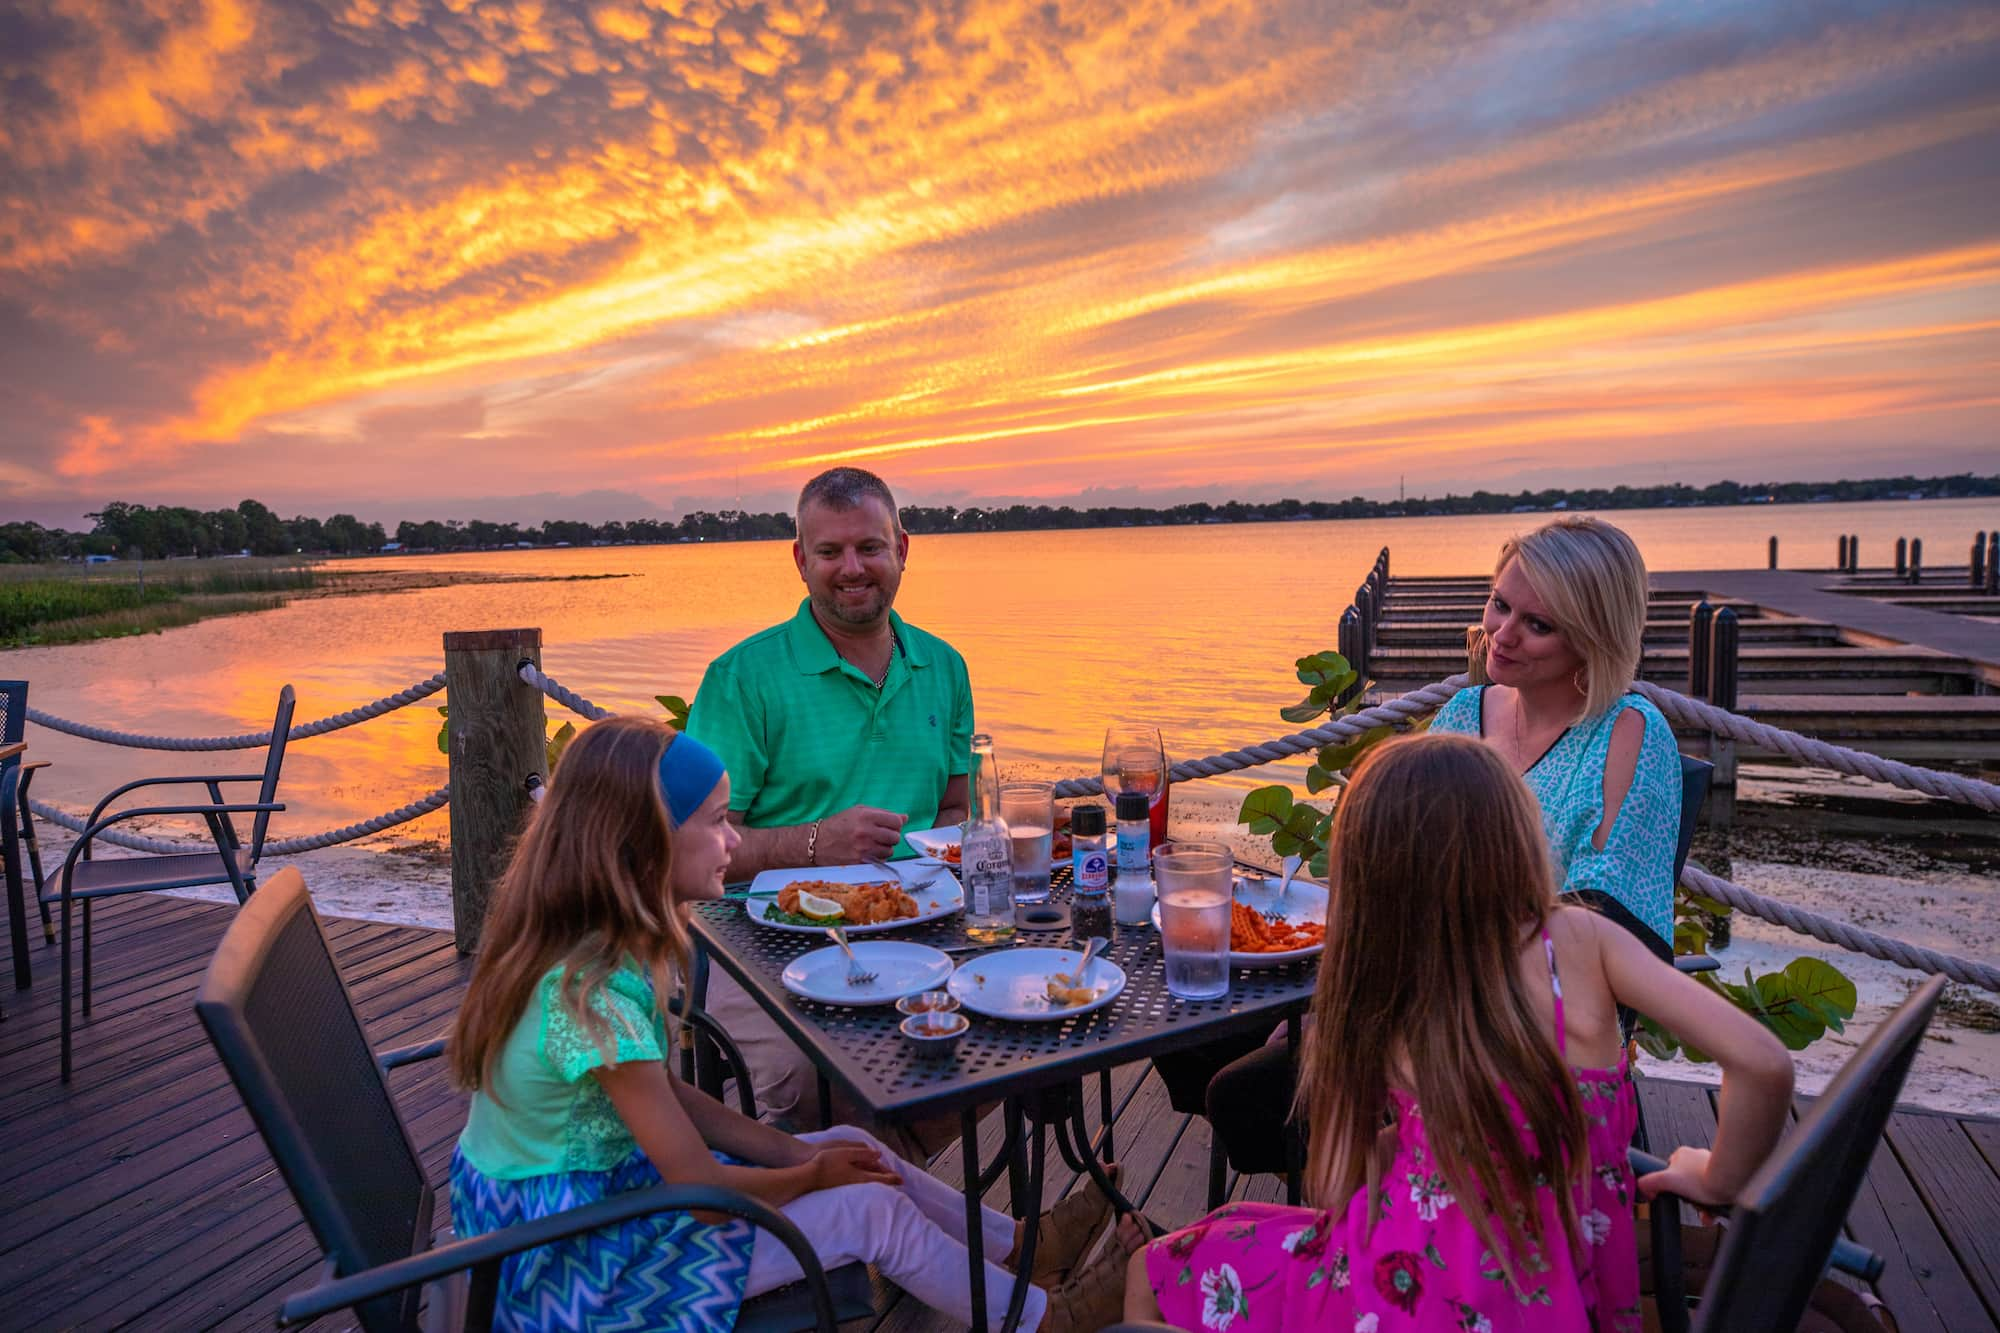 lakeside restaurants in Central Florida